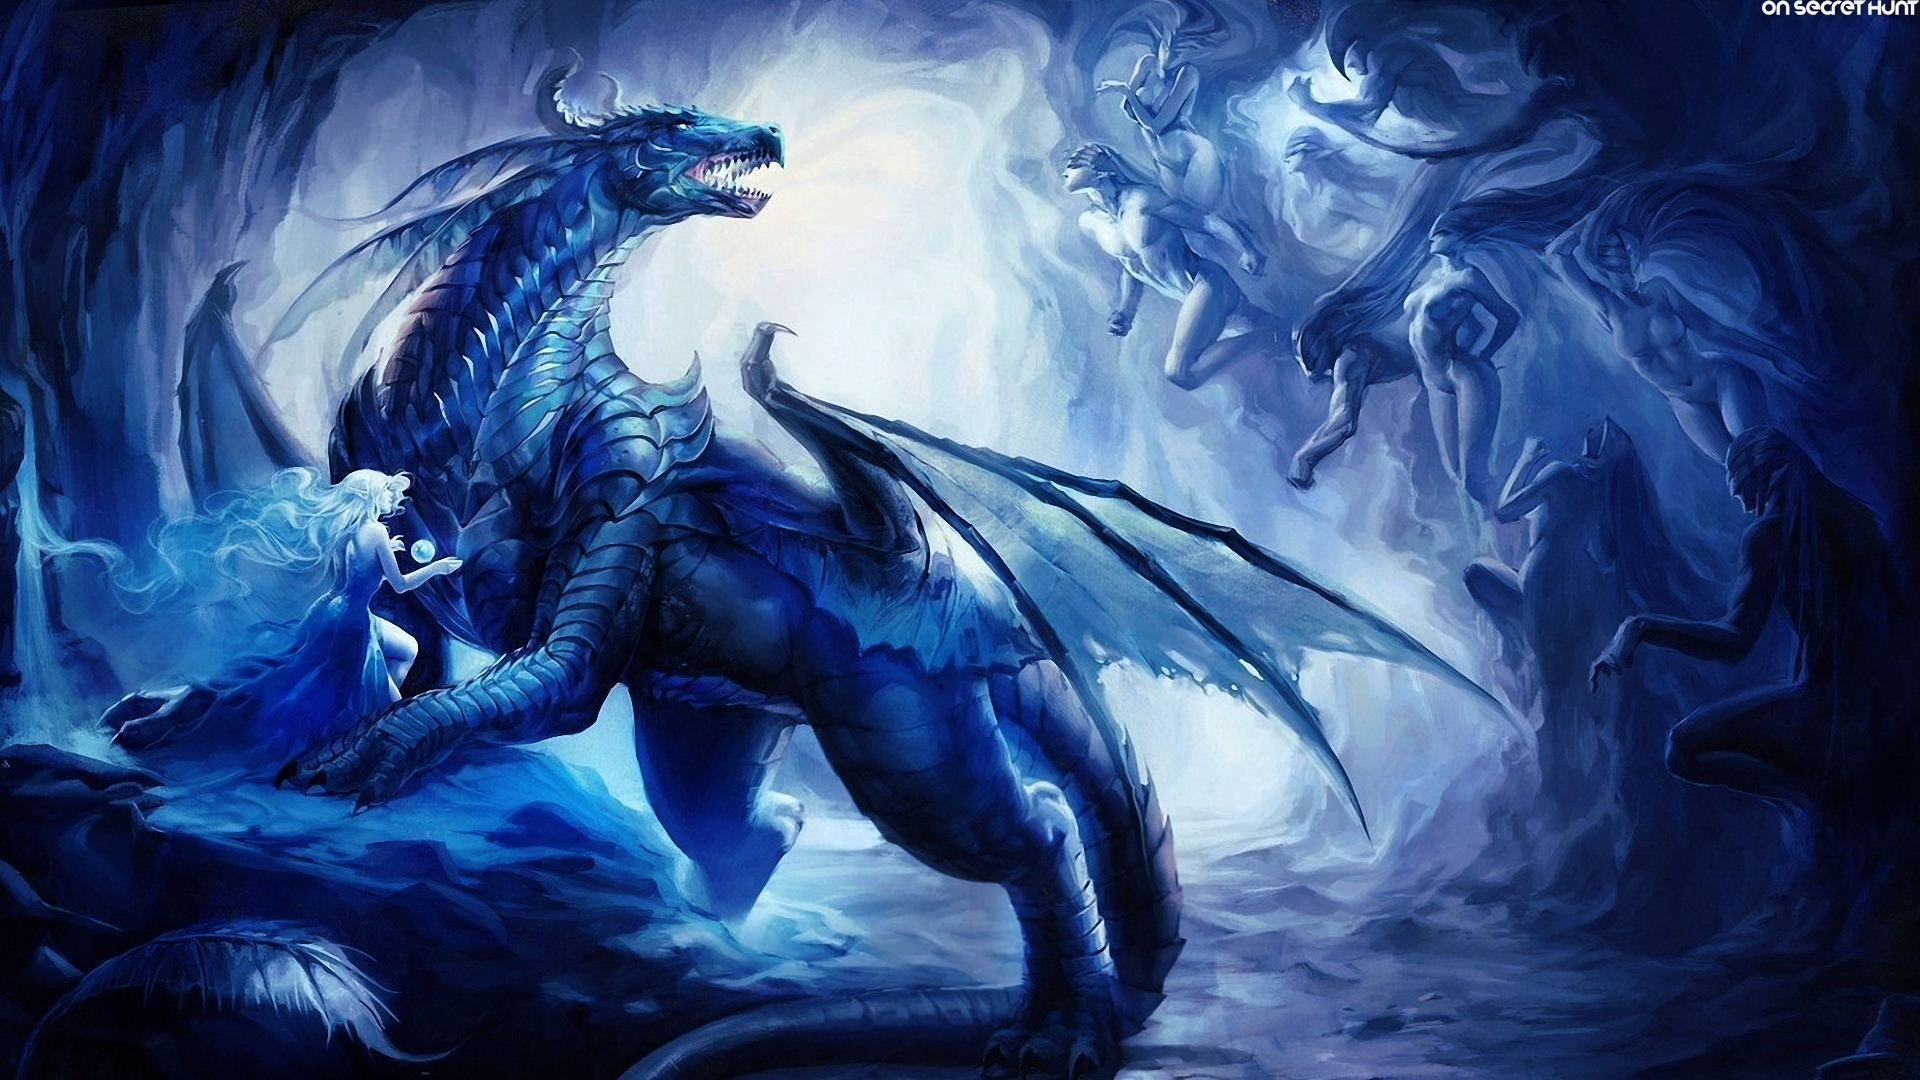 Cool dragon wallpapers wallpapertag - Dragon wallpaper hd for pc ...